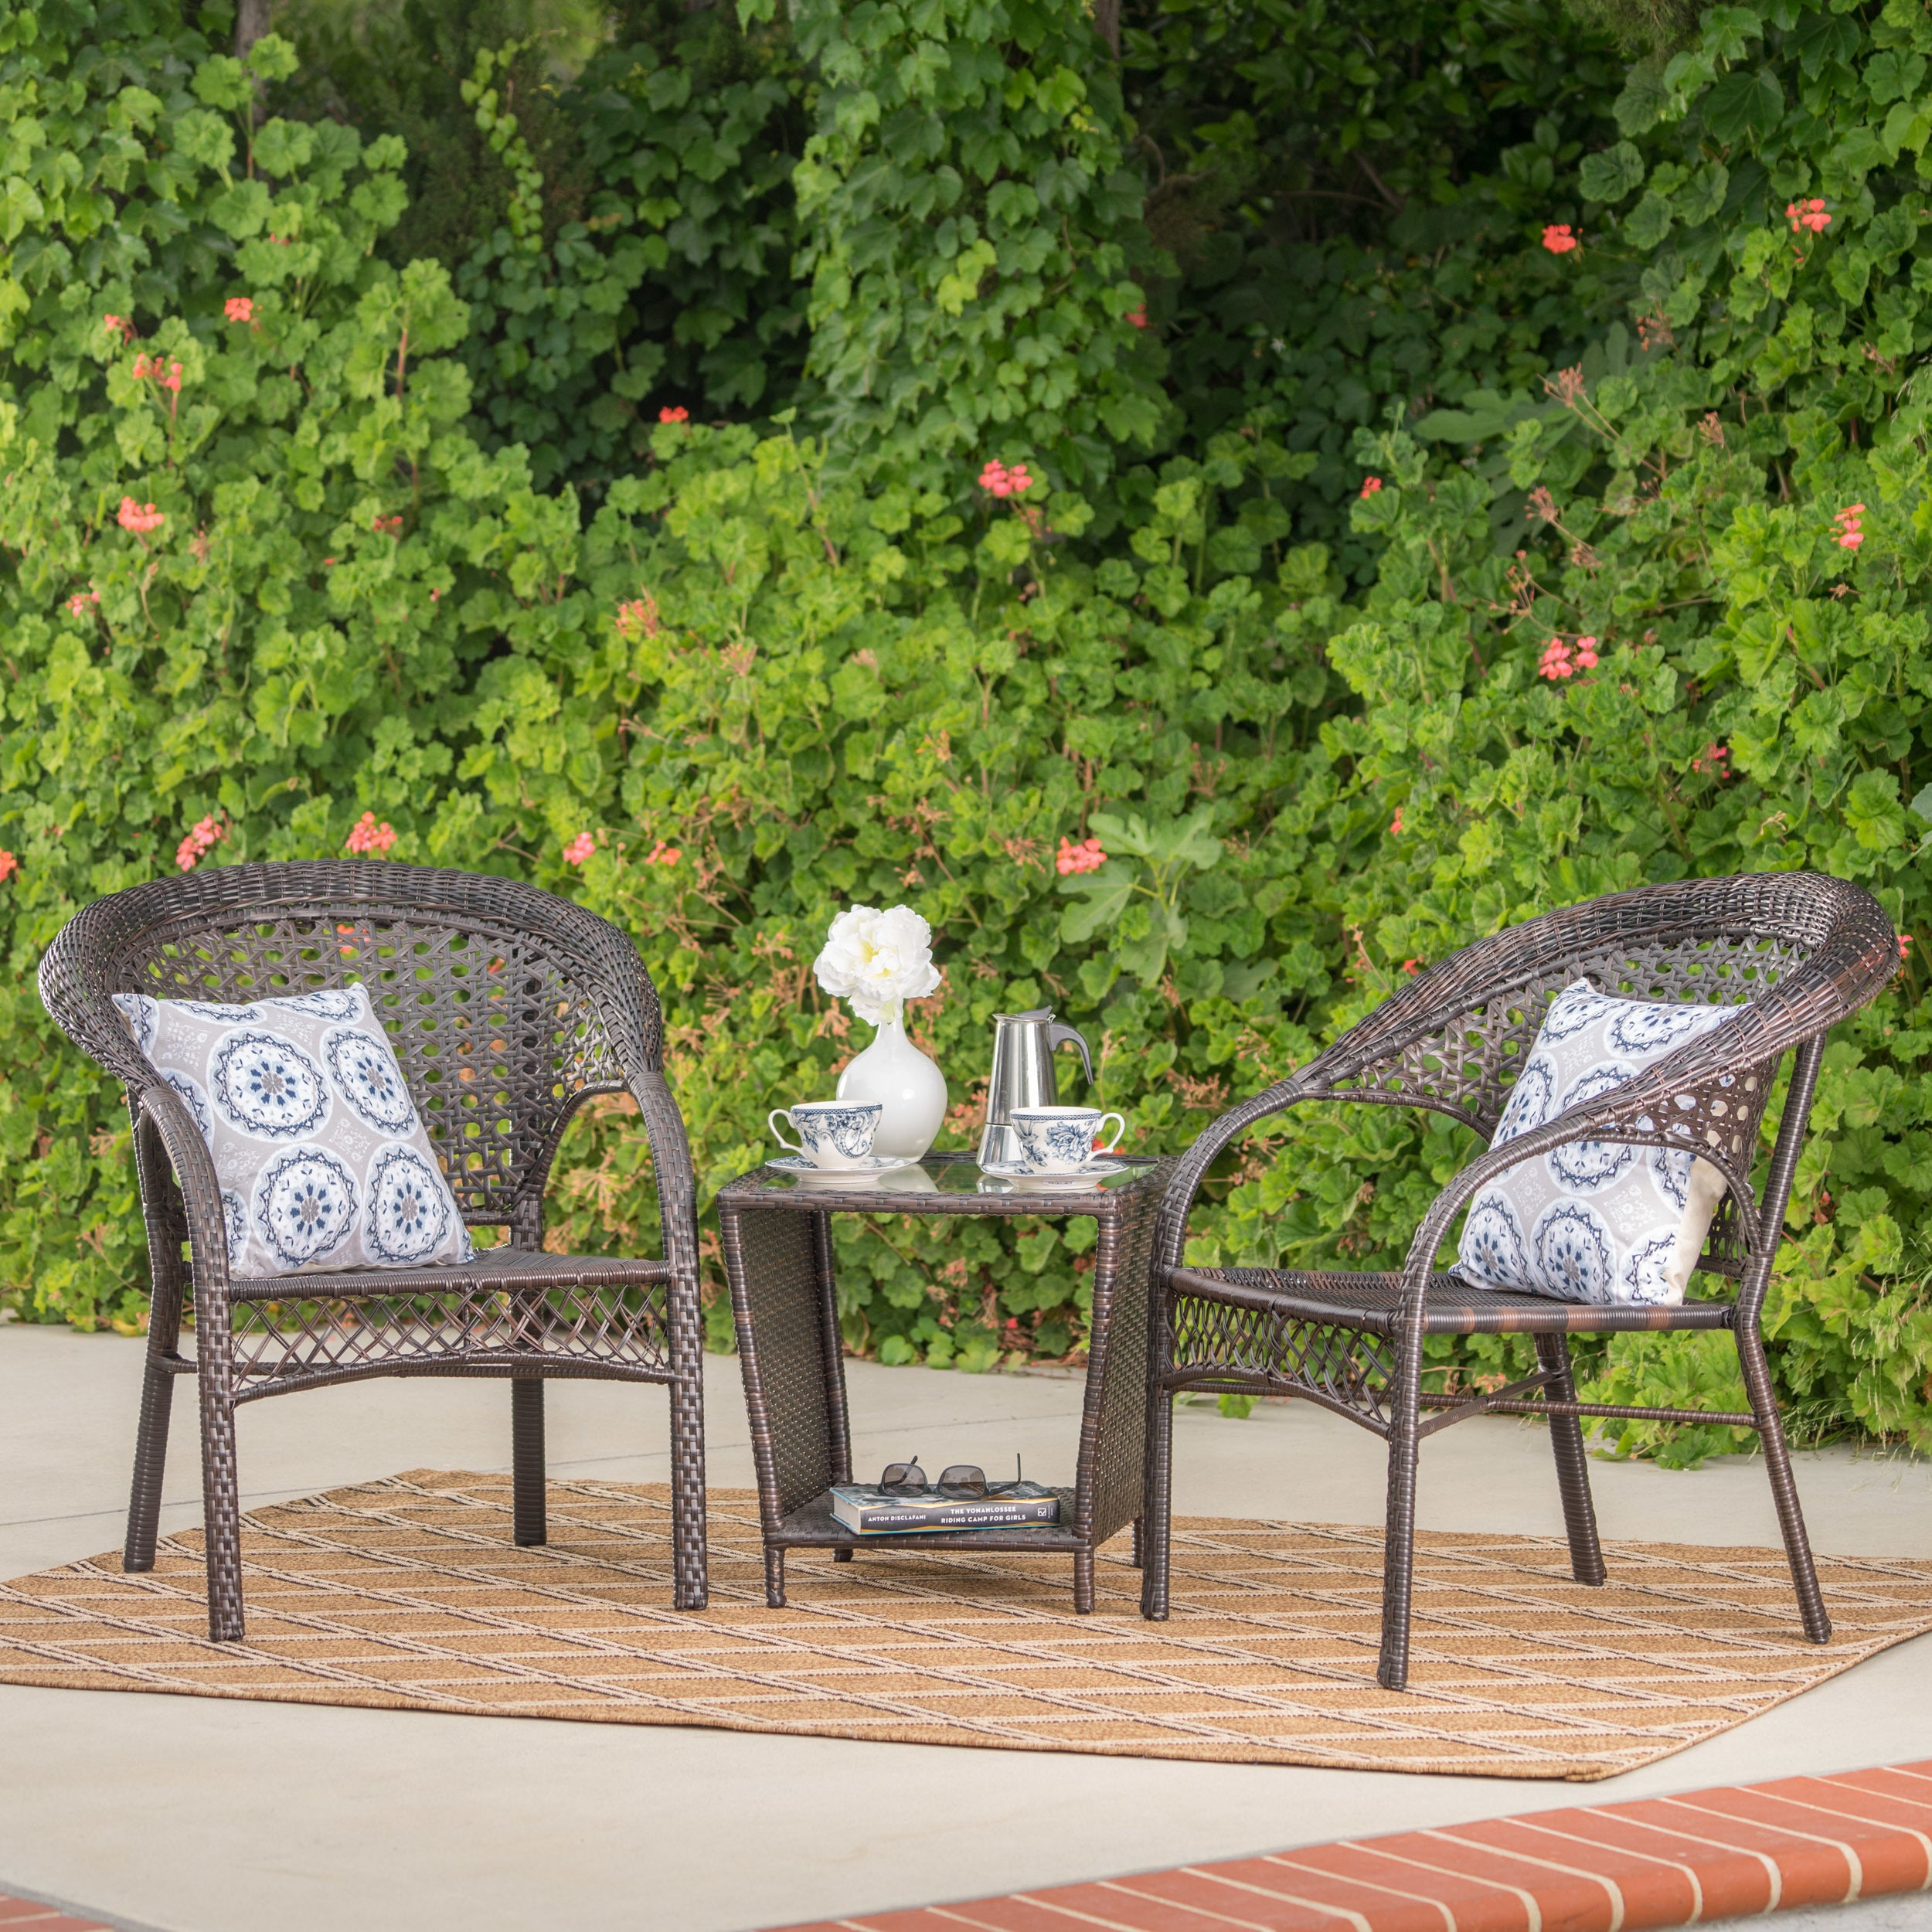 Hamilton outdoor 3 piece wicker stacking chair chat set by christopher knight home